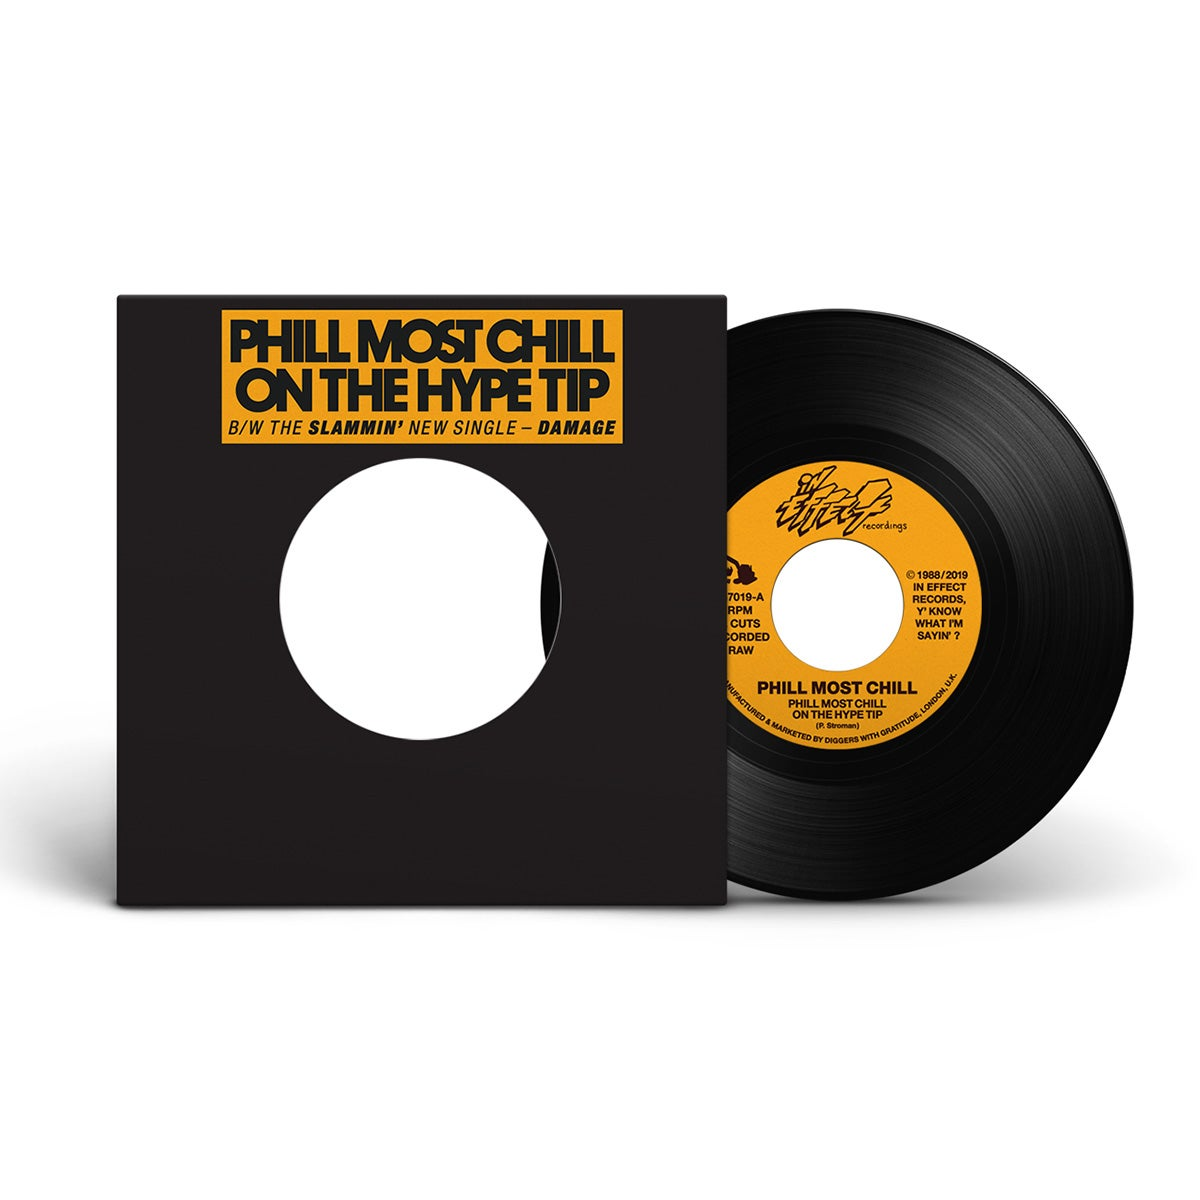 Image of Phill Most Chill - Phill Most Chill On The Hype Tip / Damage 7""